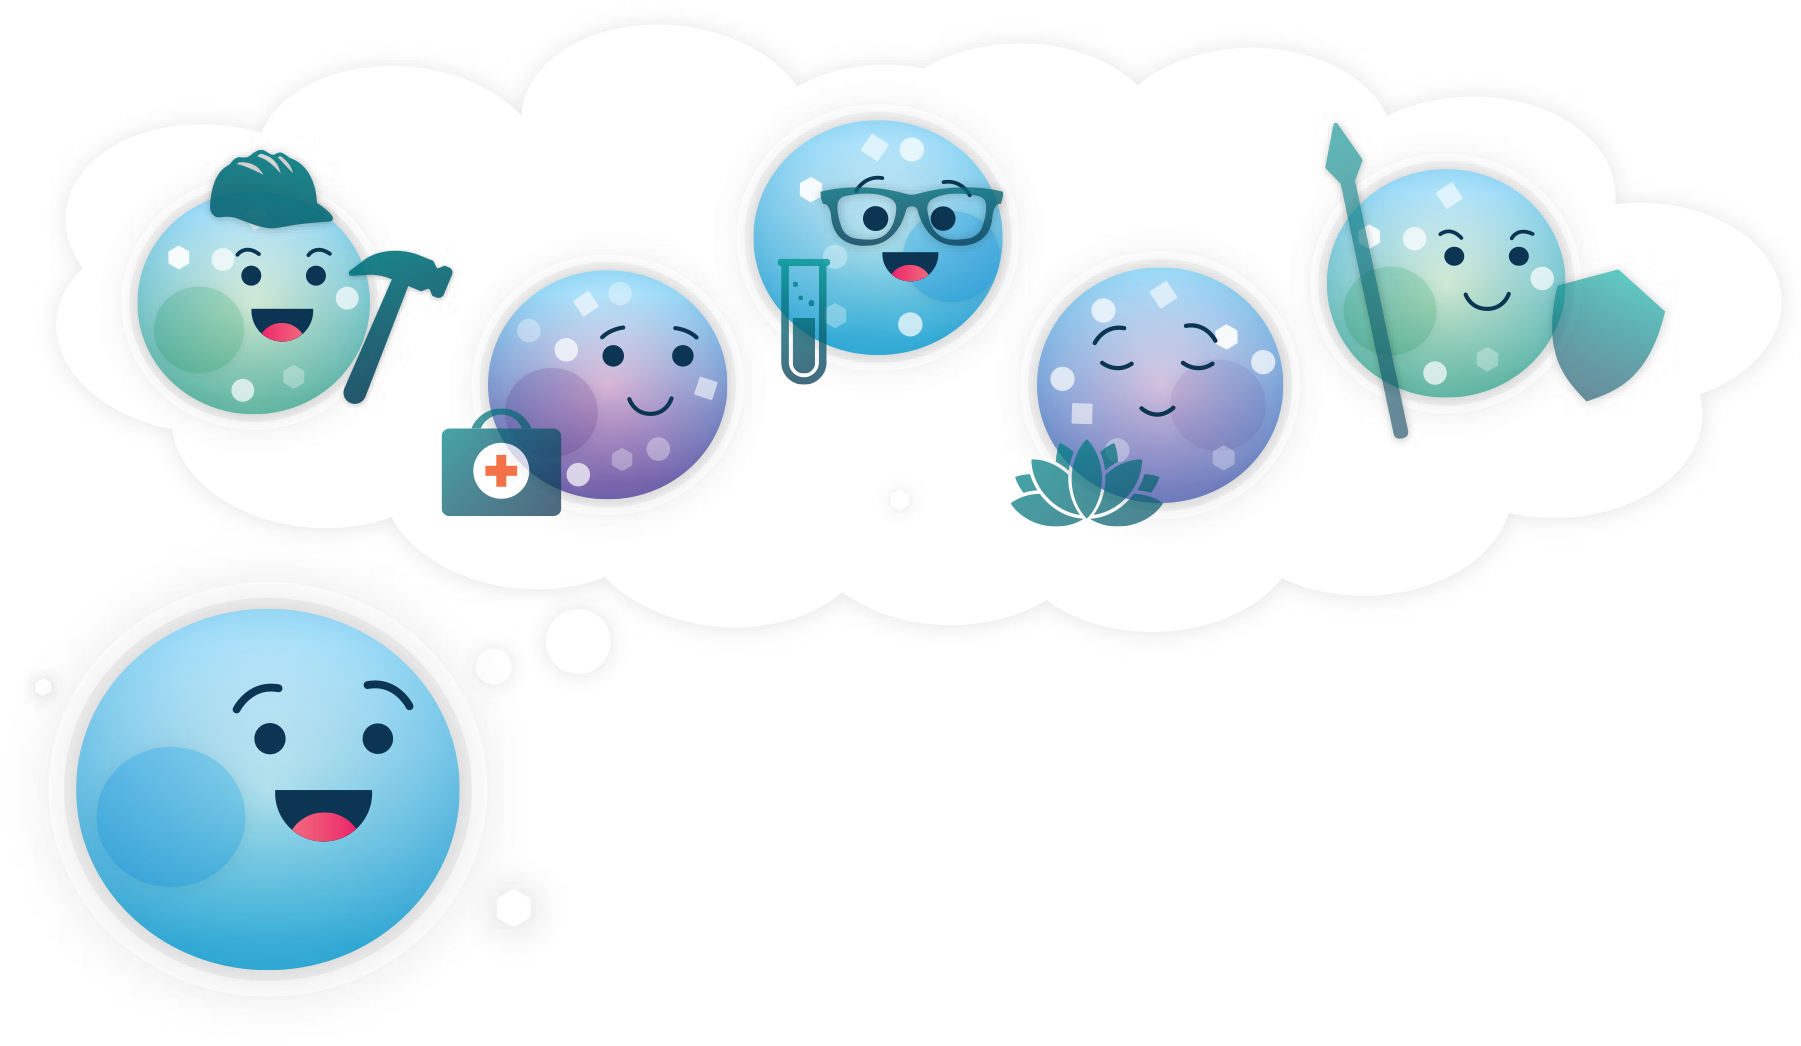 Dreaming clipart day dreaming. Sqz biotechnologies development cell